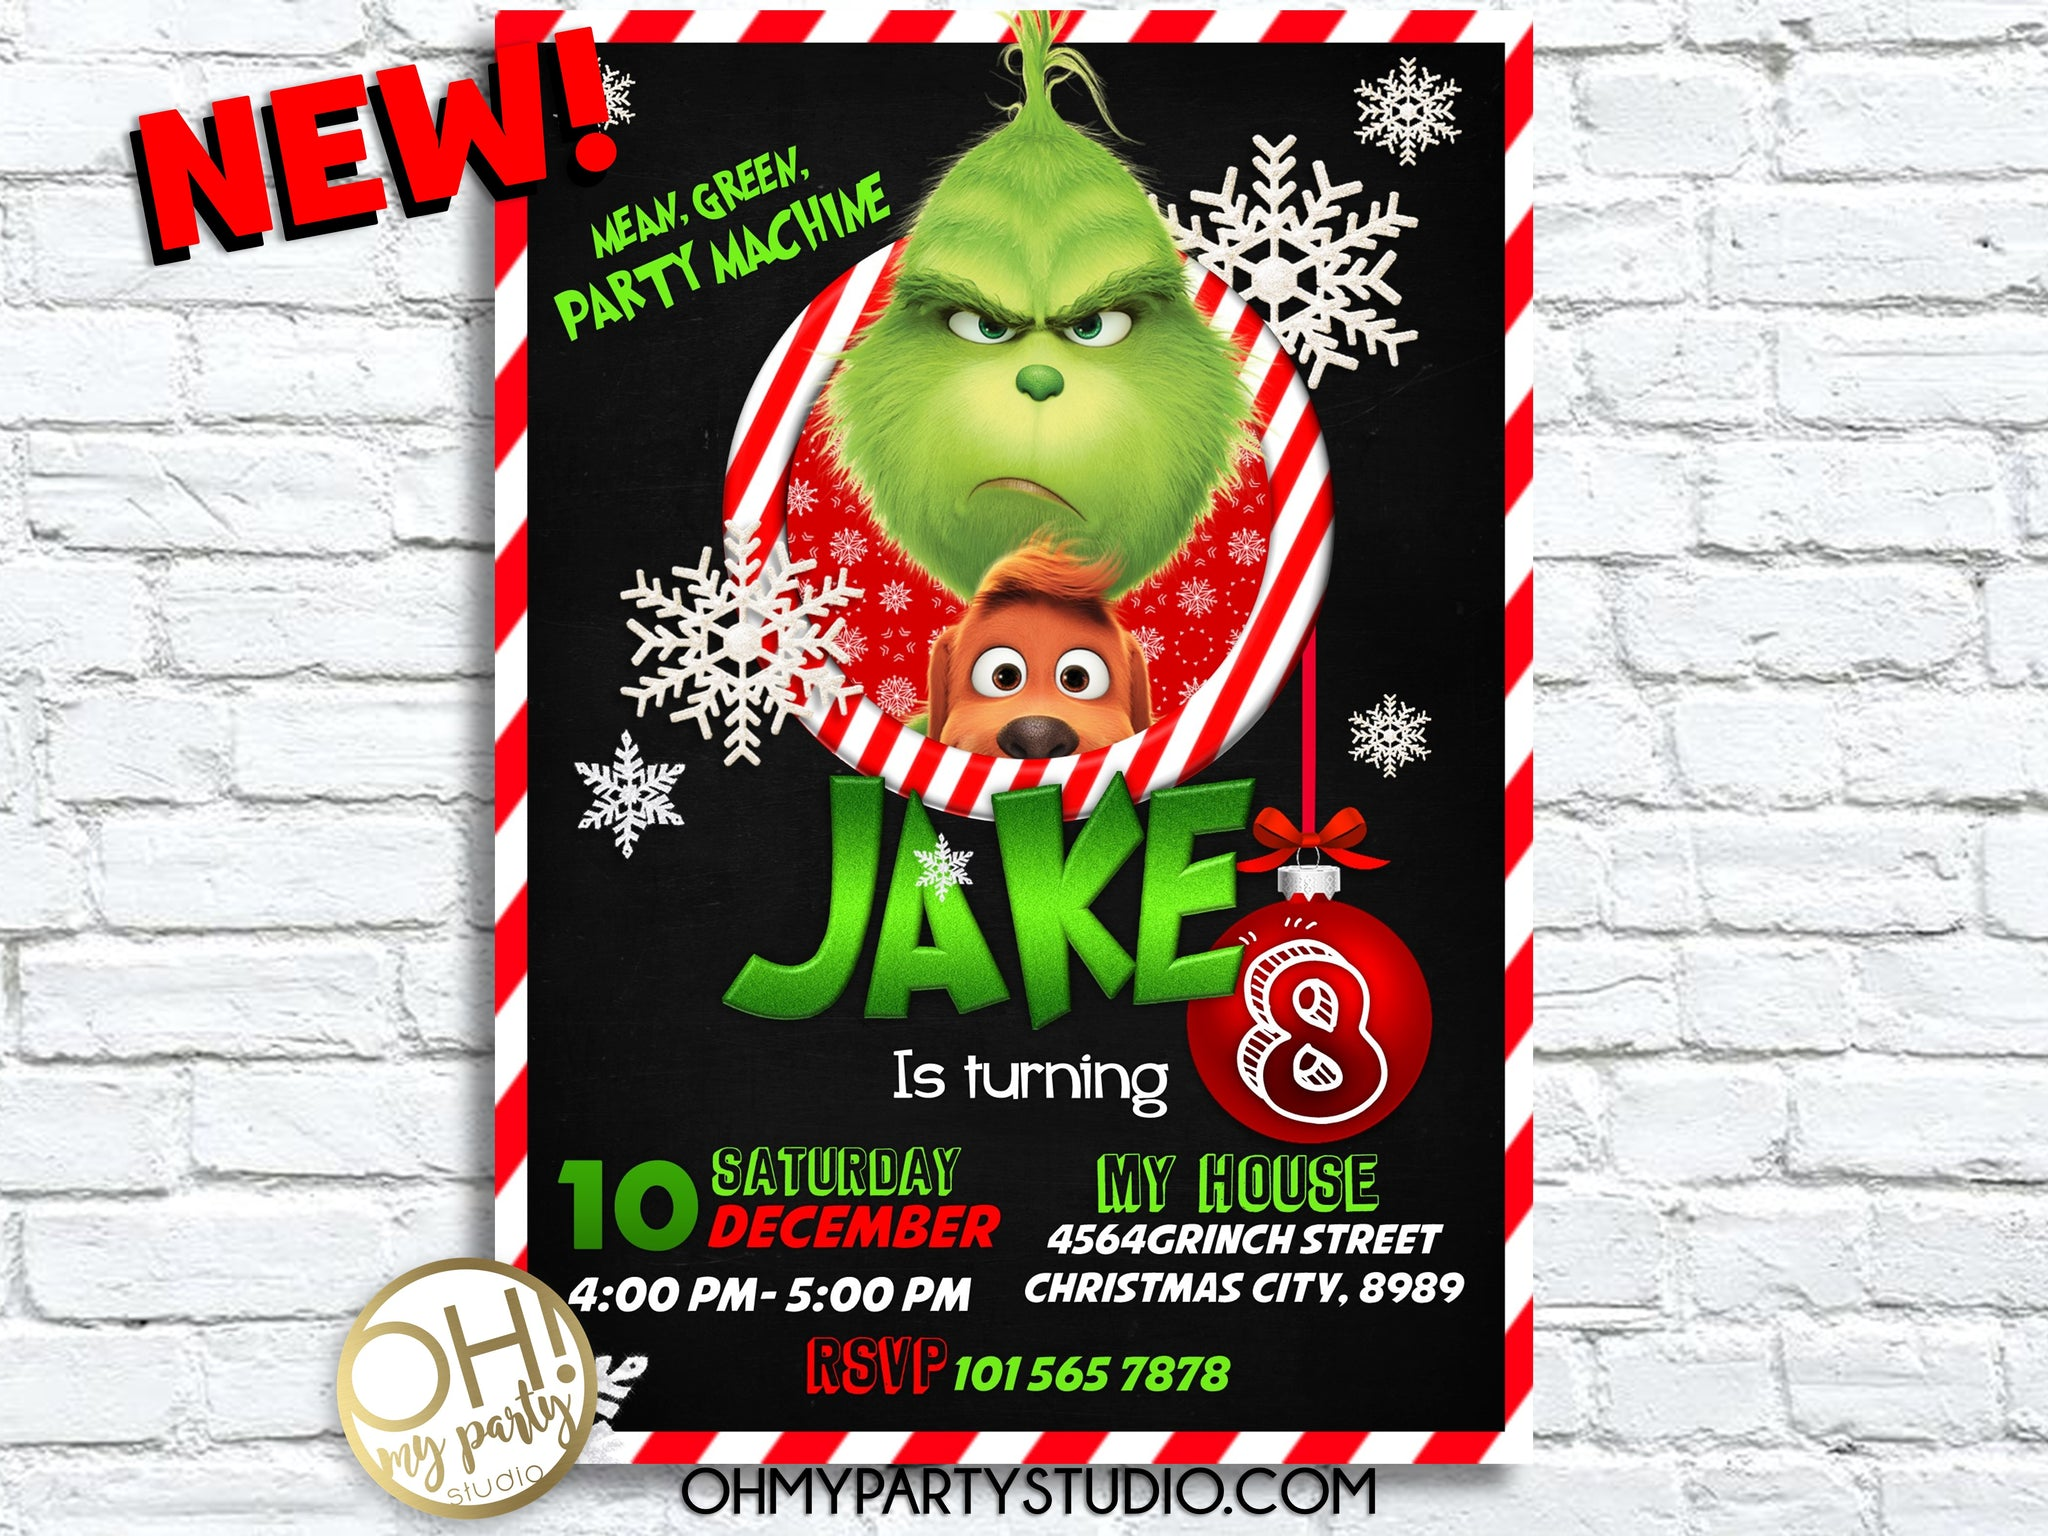 GRINCH BIRTHDAY PARTY, GRINCH INVITATION, GRINCH INVITATIONS, GRINCH PARTY PRINTABLES, GRINCH DECORATIONS, GRINCH INVITE, GRINCH CARD, GRINCH CHRISTMAS PARTY, GRINCH PARTY IDEAS, GRINCH INVITACIÓN, GRINCH FIESTA, GRINCH BIRTHDAY PARTY IDEAS